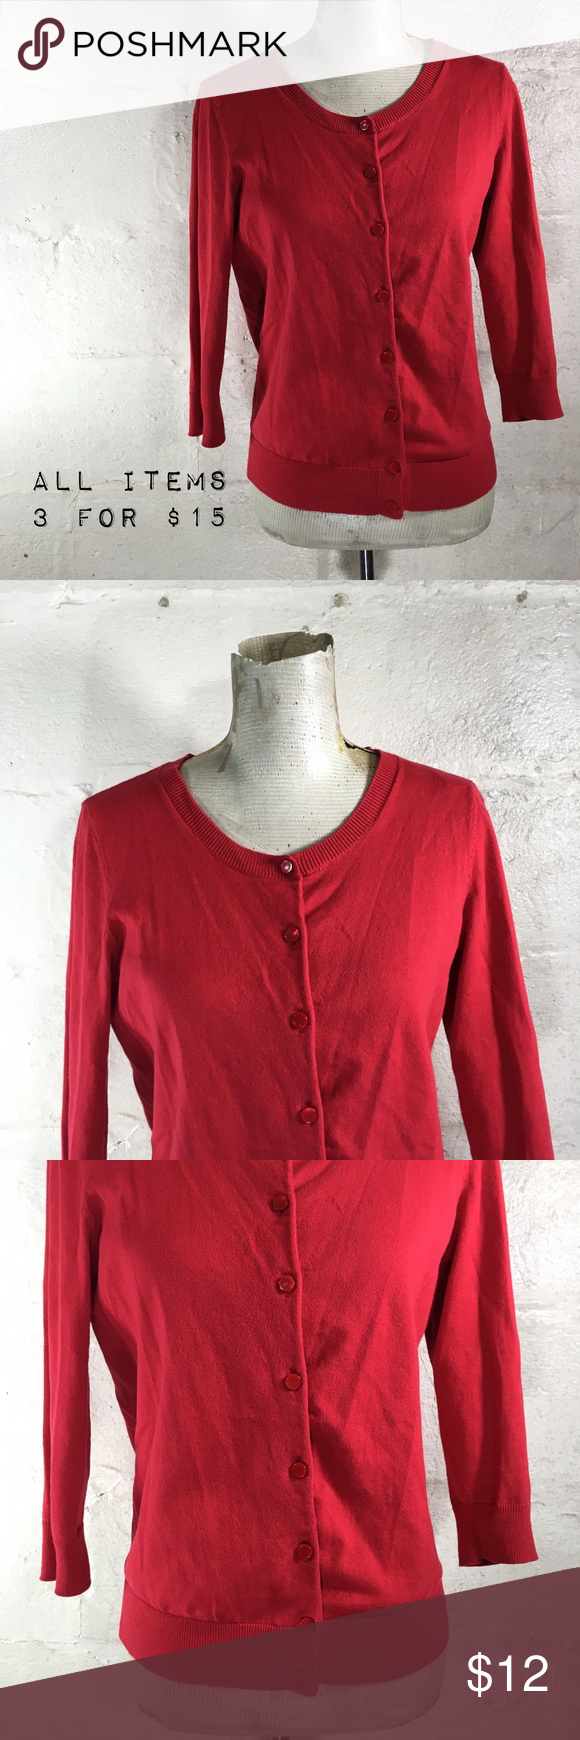 Talbots Apple Red Cropped Cardigan Sweater | Talbots